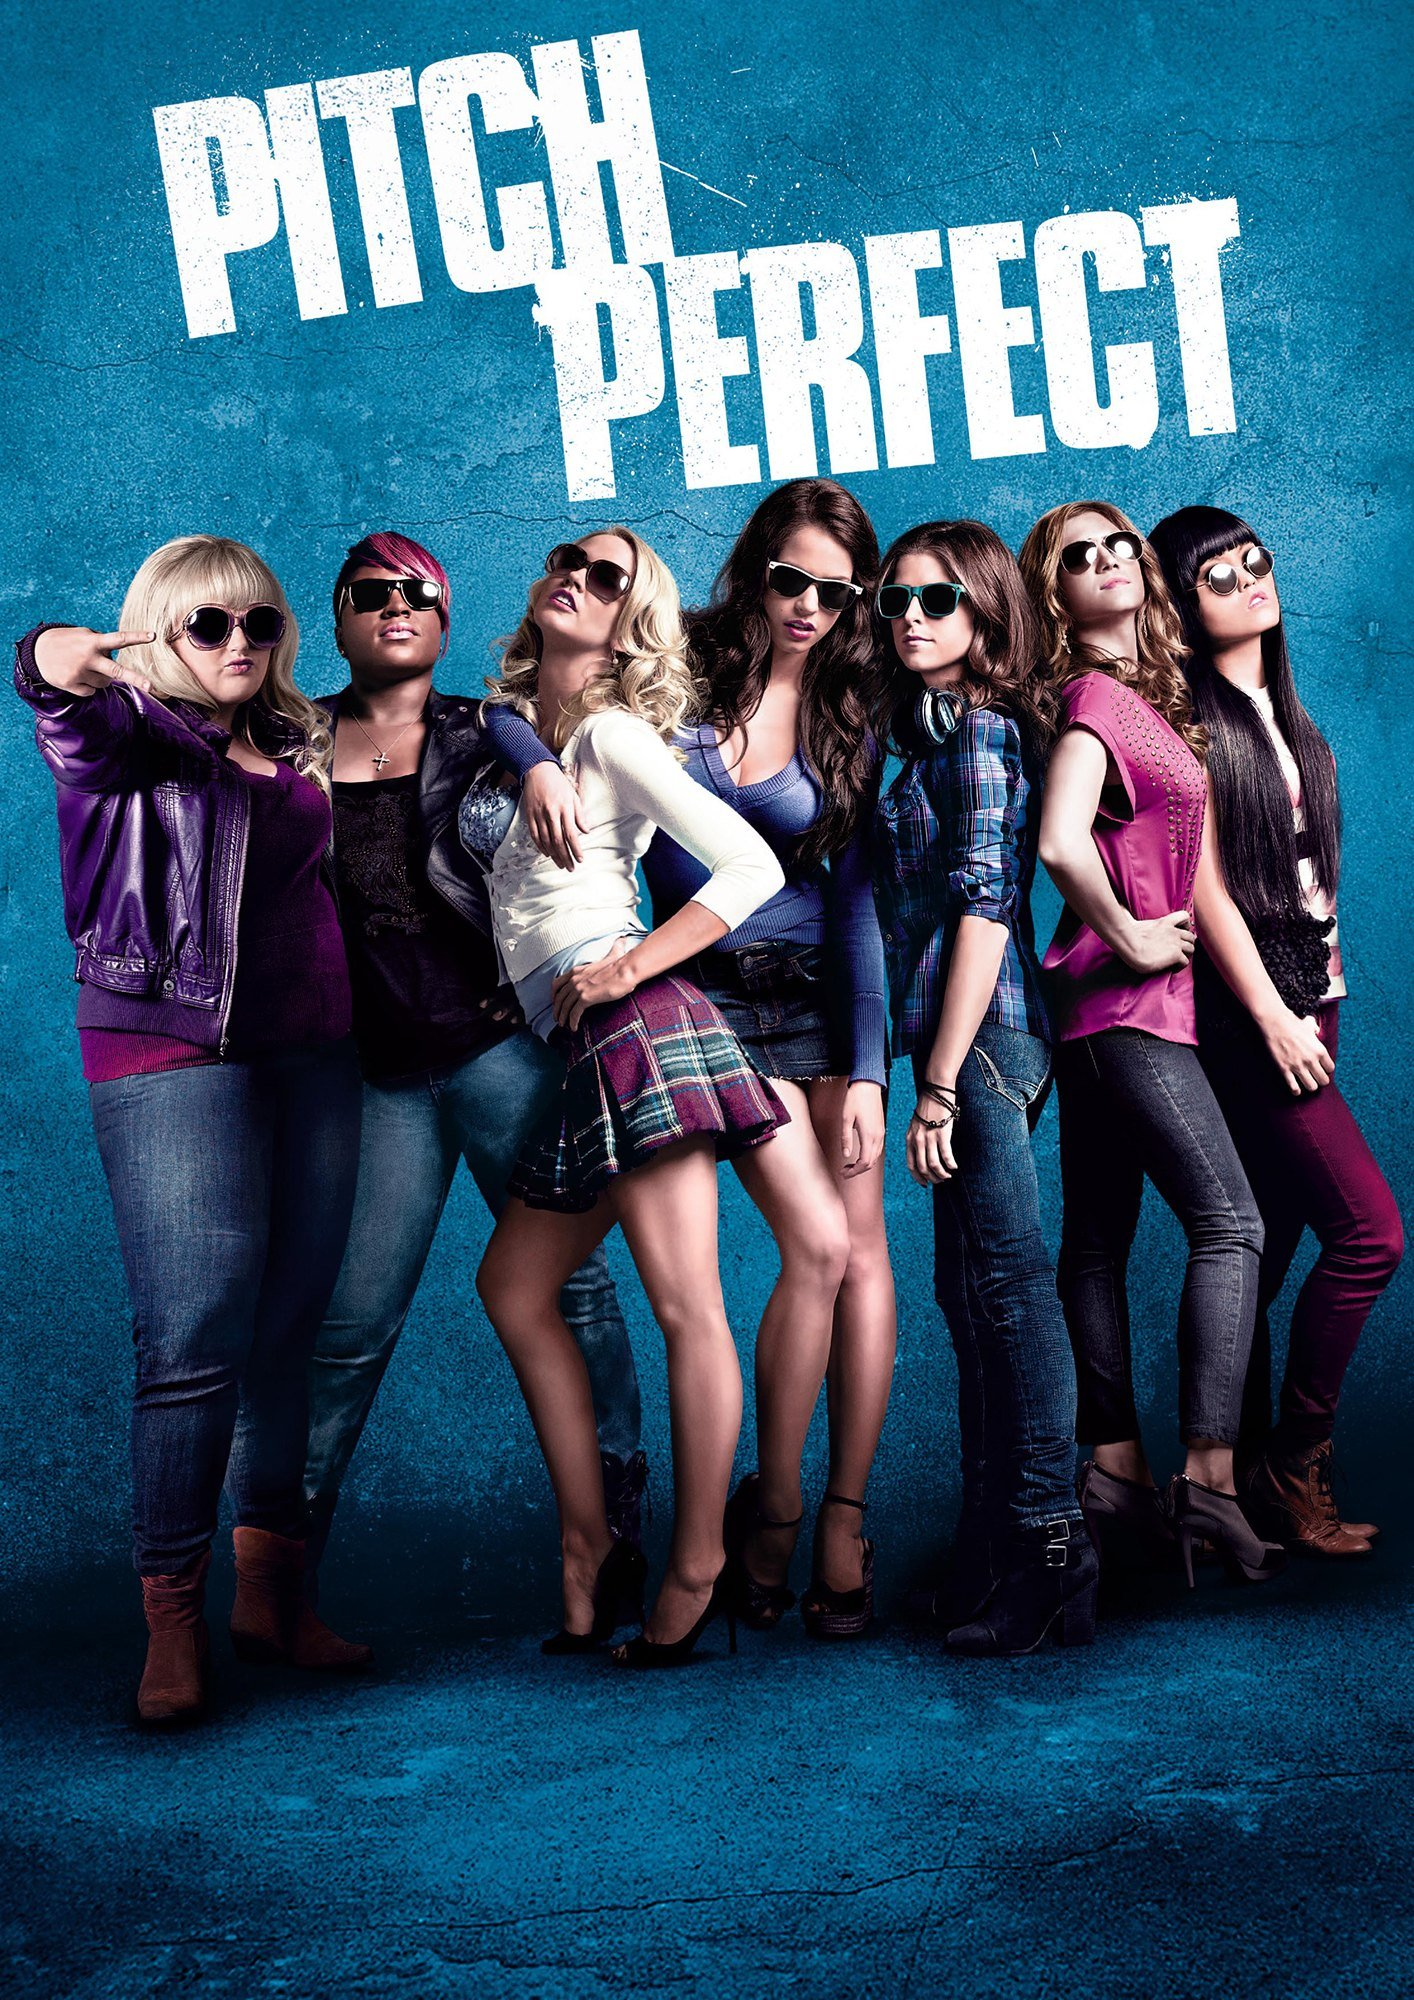 Pitch Perfect Cast Where Are They Now | Stay at Home Mum.com.au